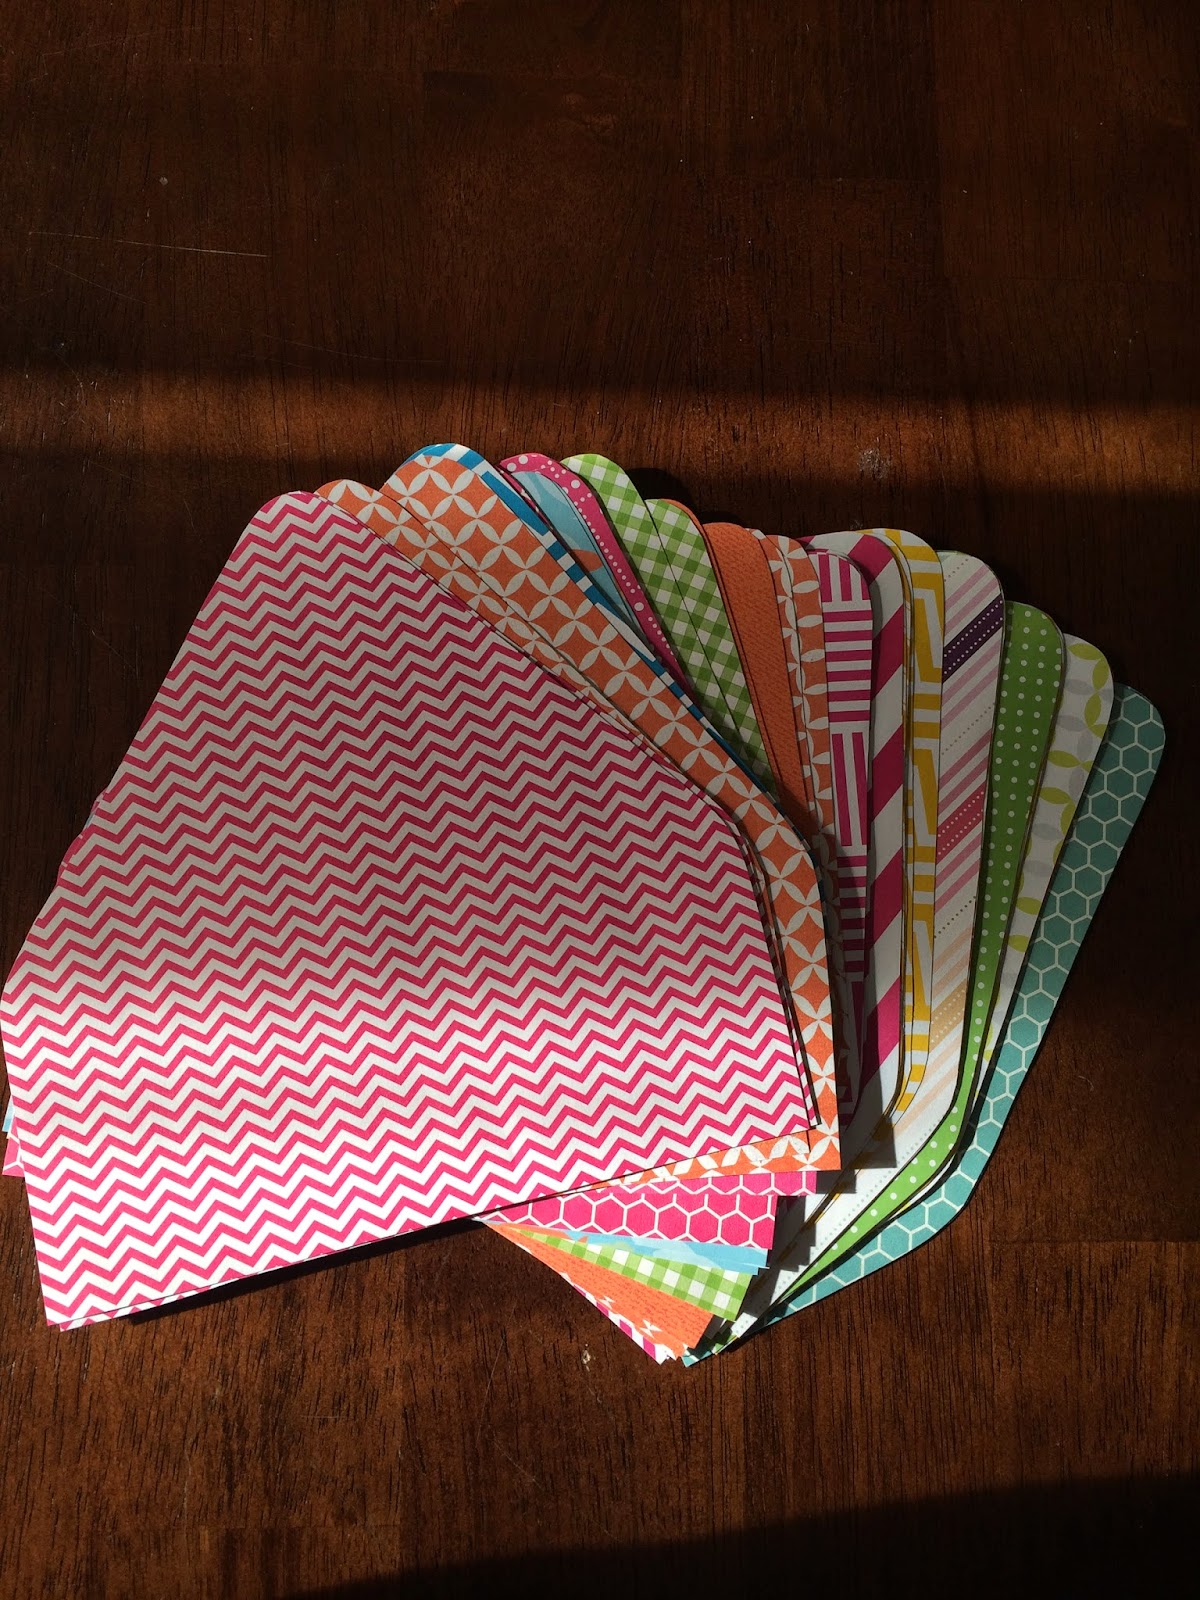 Doeblerghini Bunch:  Envelope Liner - Liners cut up in a pile